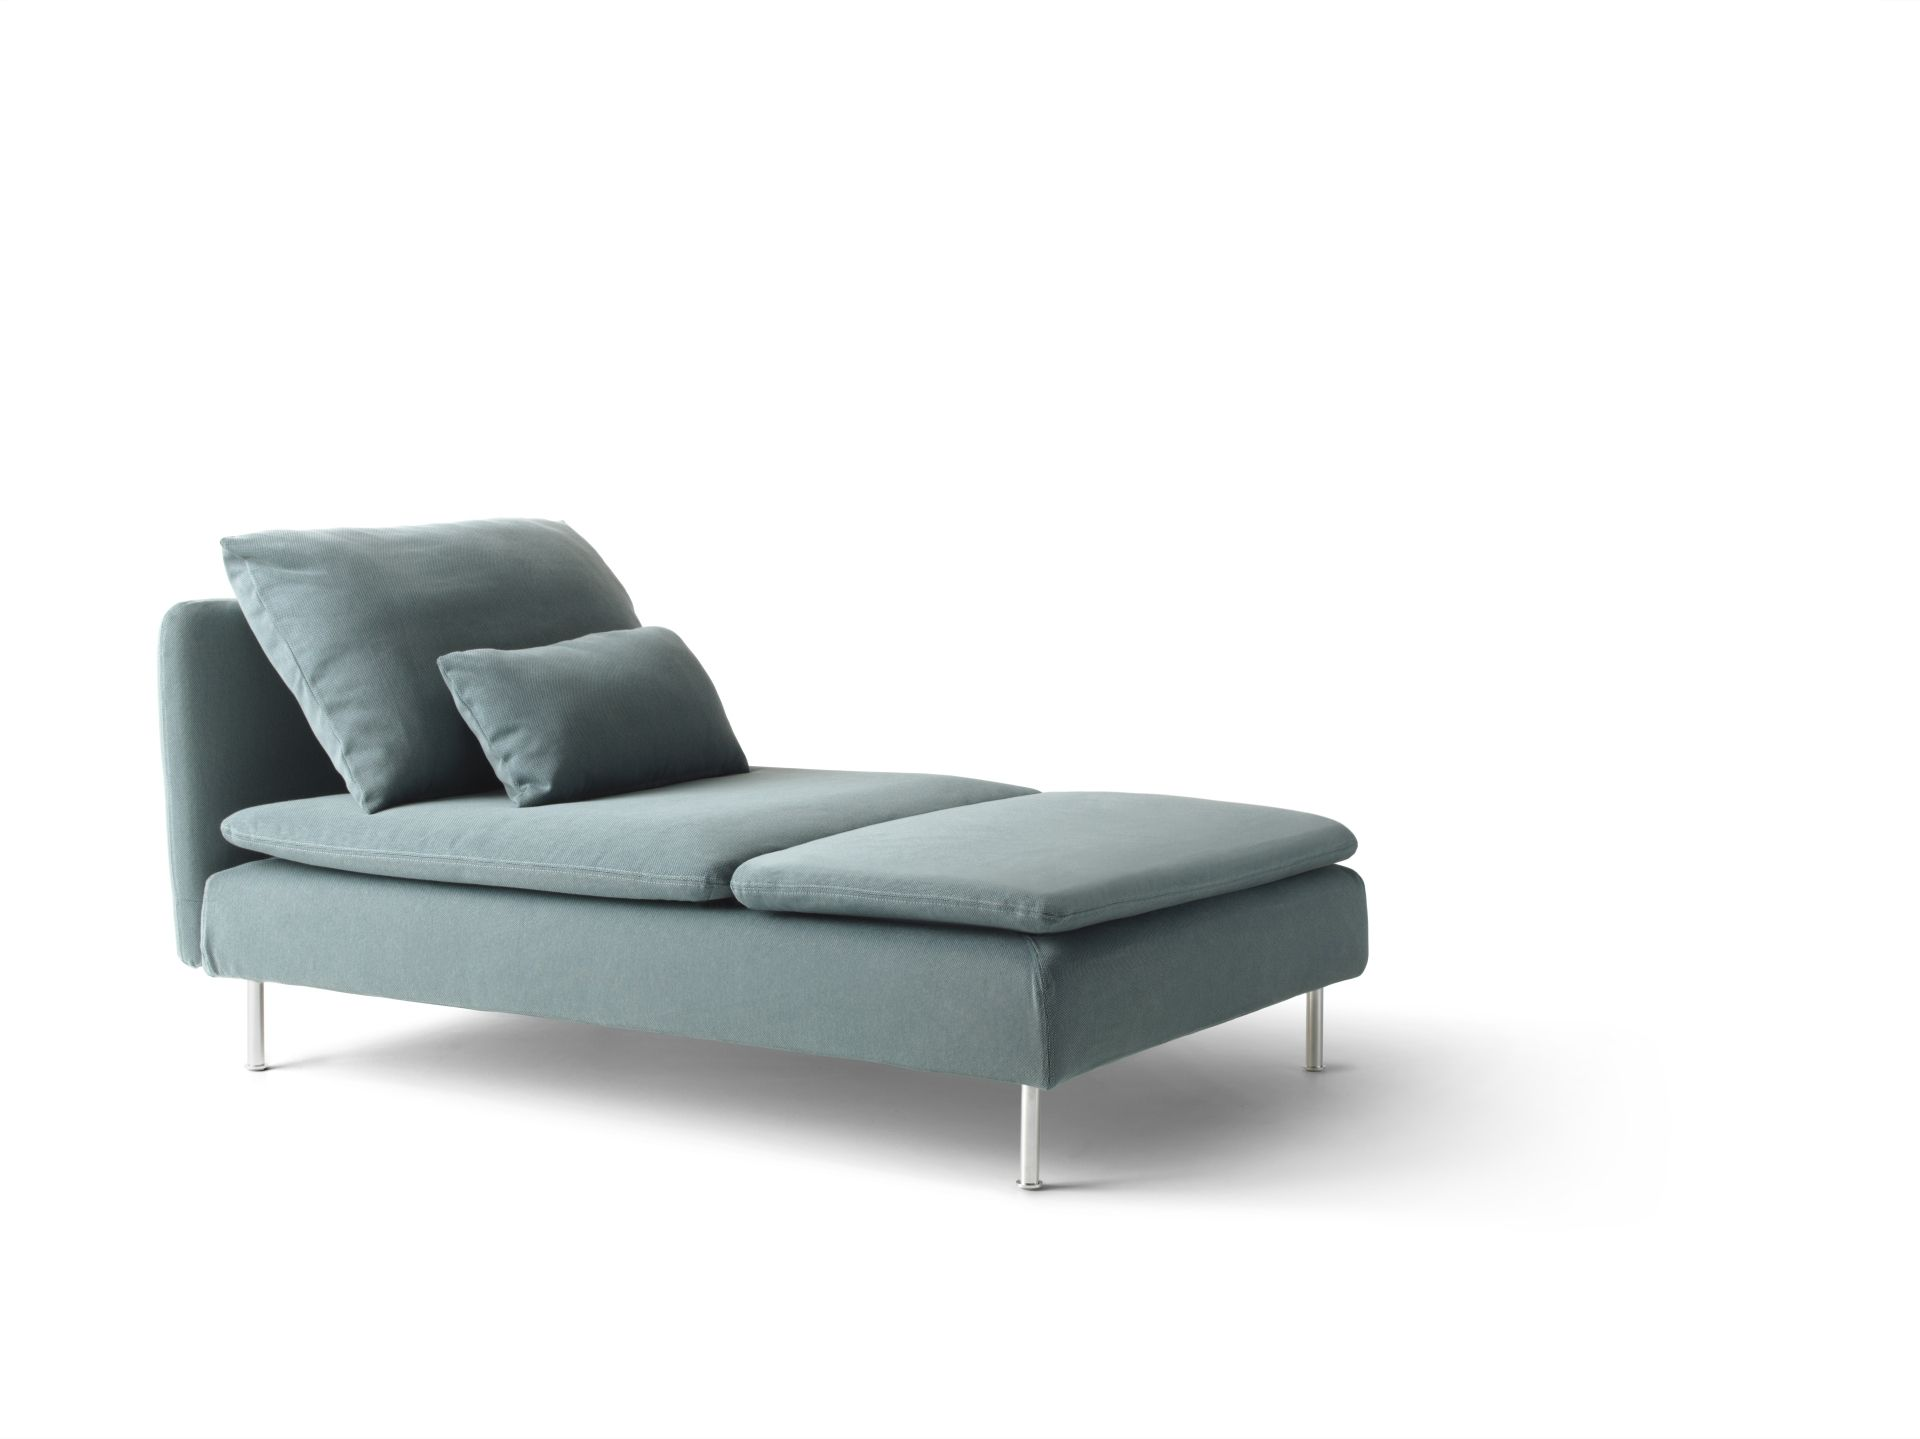 S derhamn products met and chaise longue - Chaise longue exterieur ikea ...